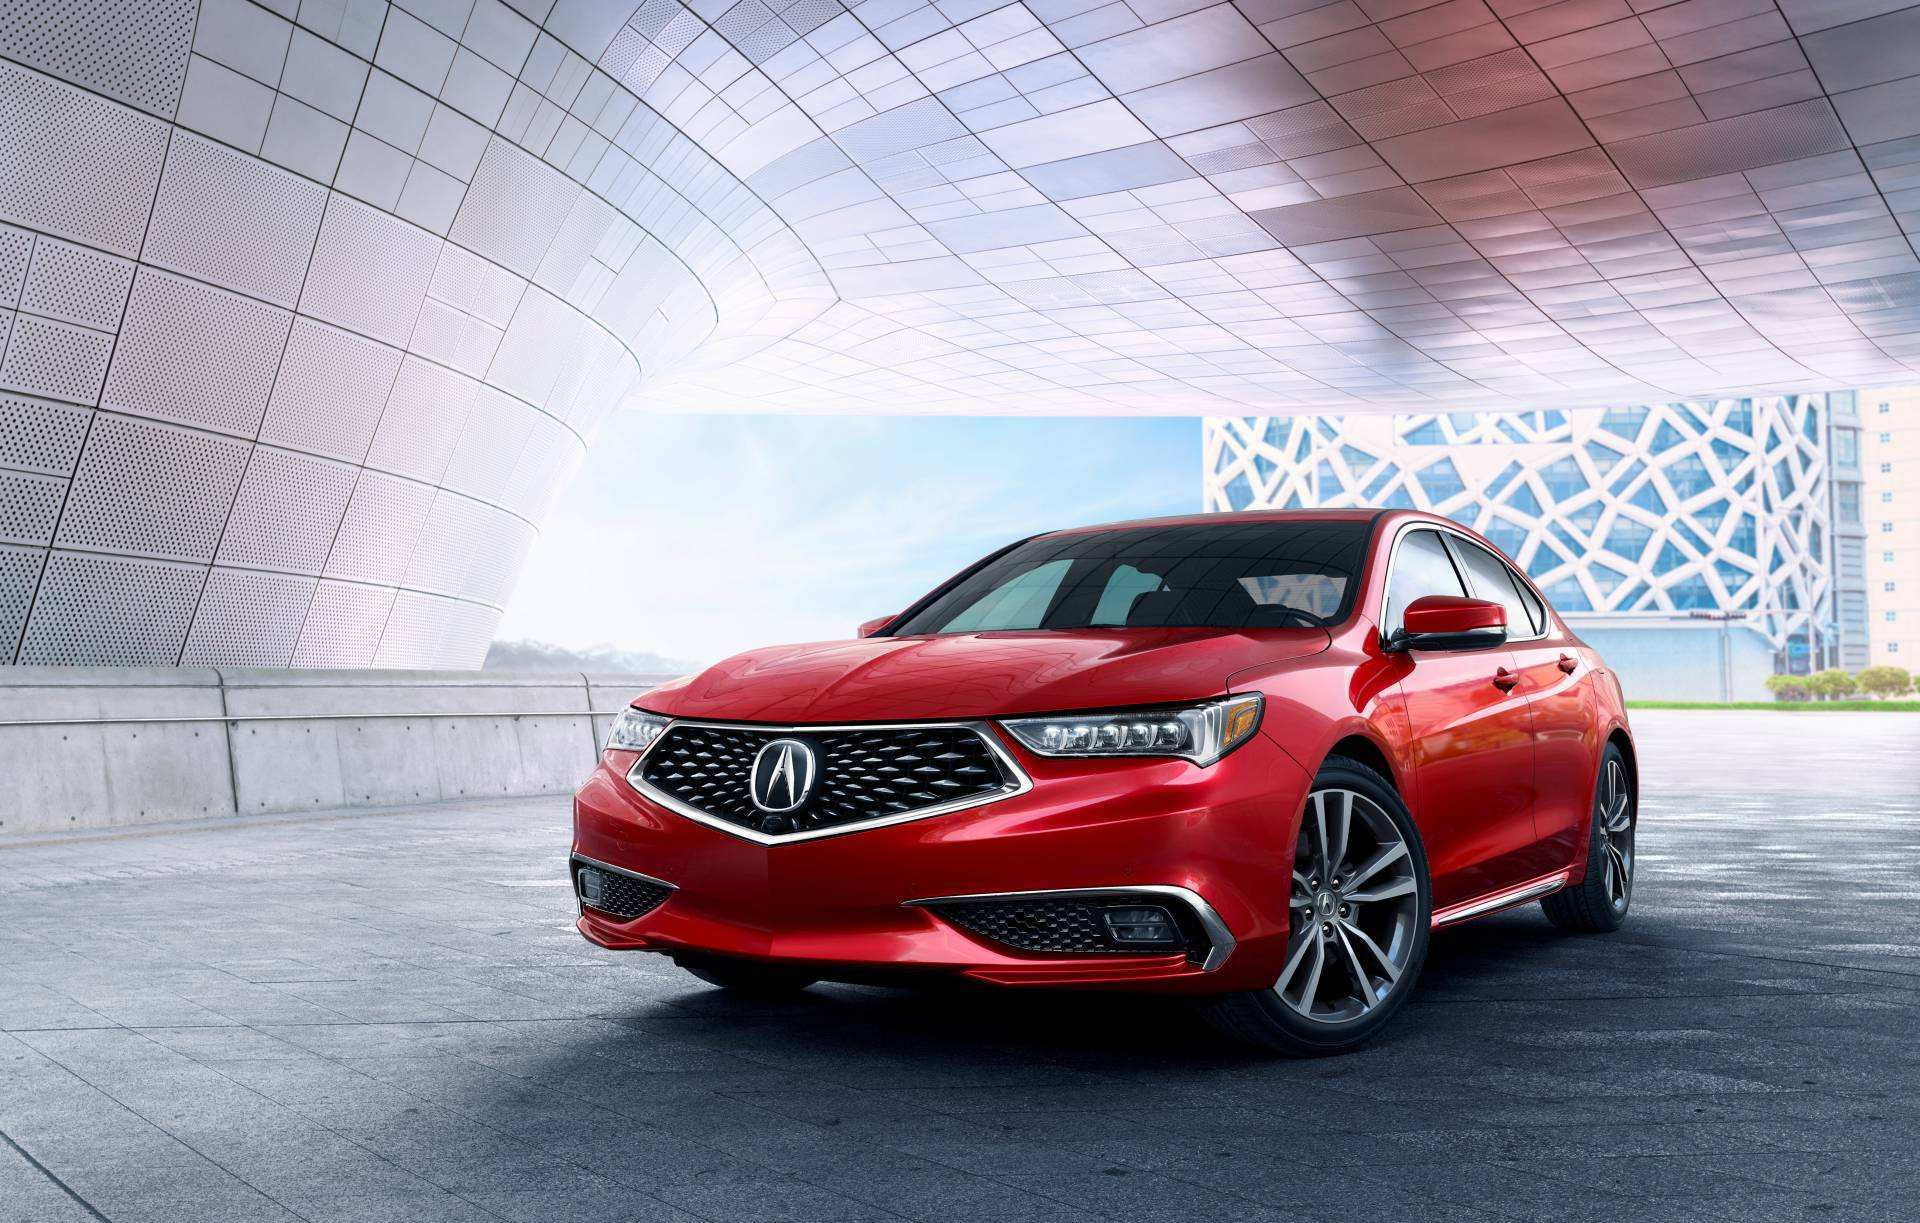 34 Gallery of When Does The 2020 Acura Tlx Come Out Redesign and Concept by When Does The 2020 Acura Tlx Come Out